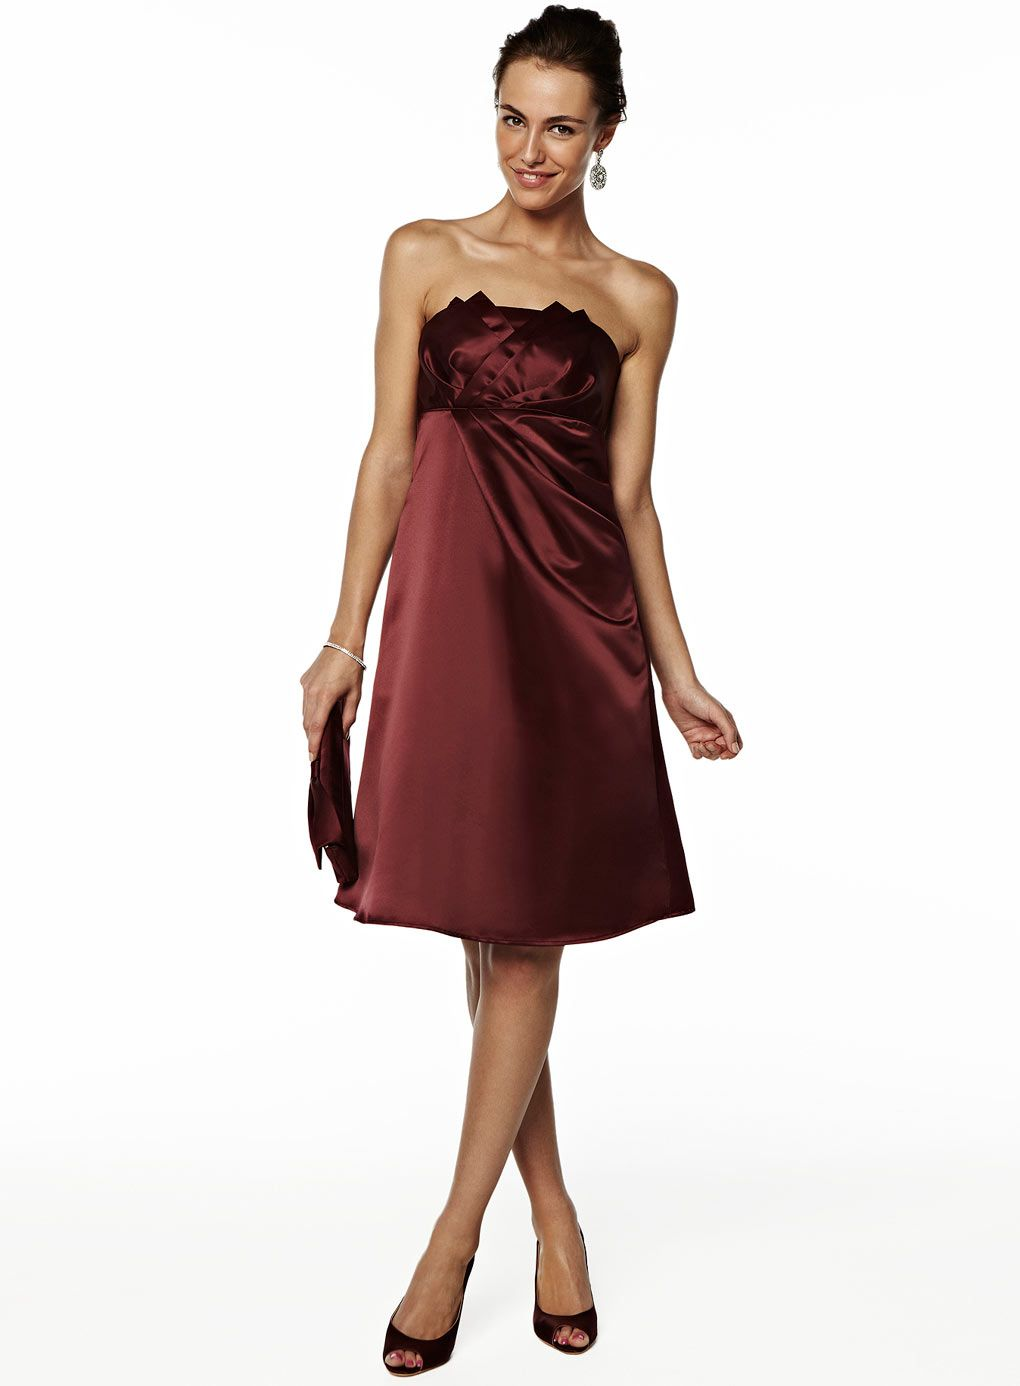 Colorful British Home Stores Bridesmaids Dresses Picture Collection ...